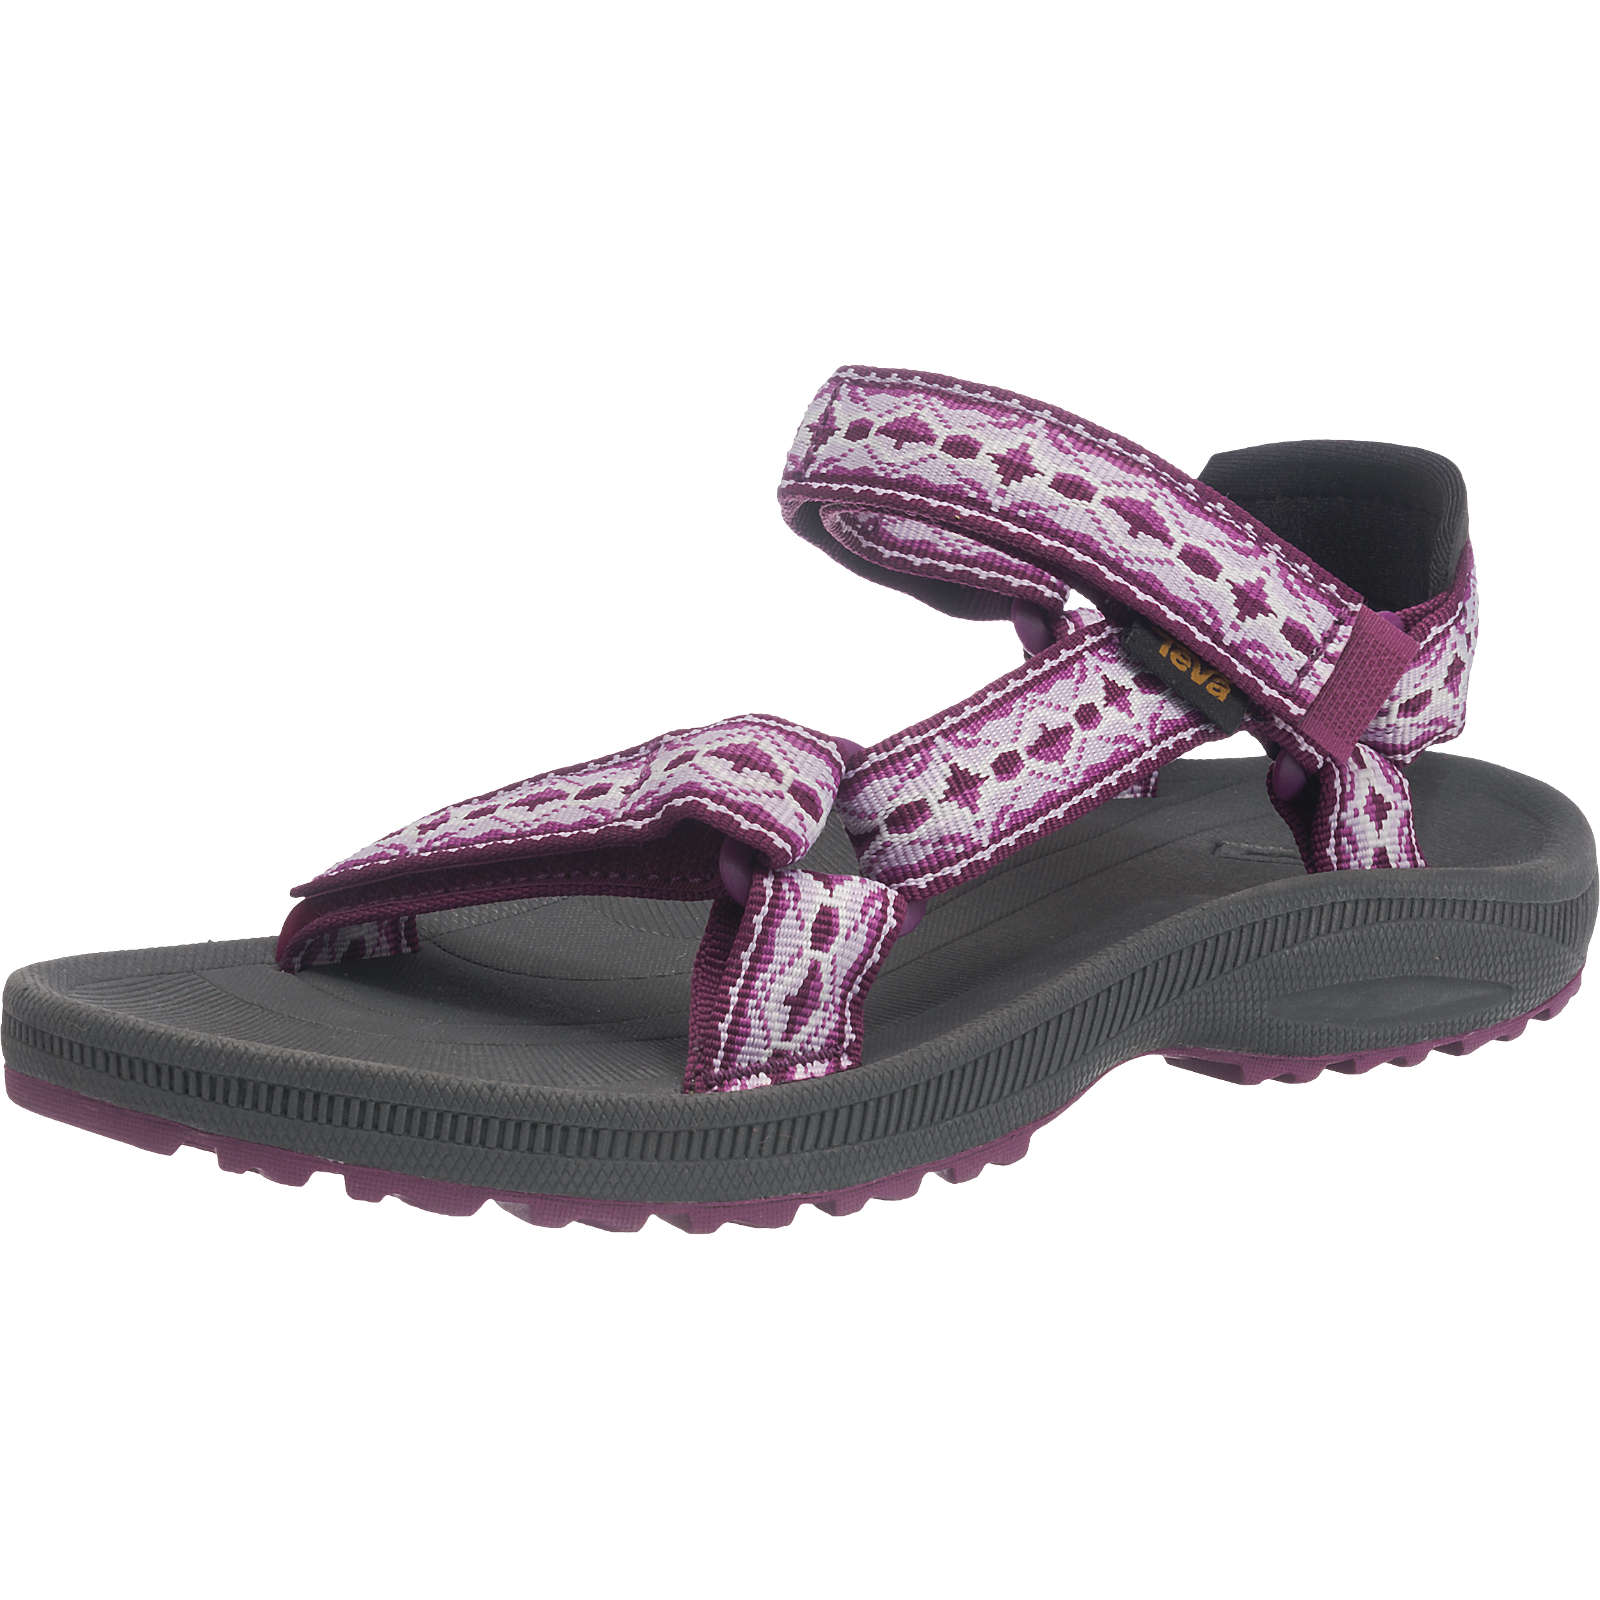 Teva Winsted Outdoorsandalen lila-kombi Damen Gr. 37